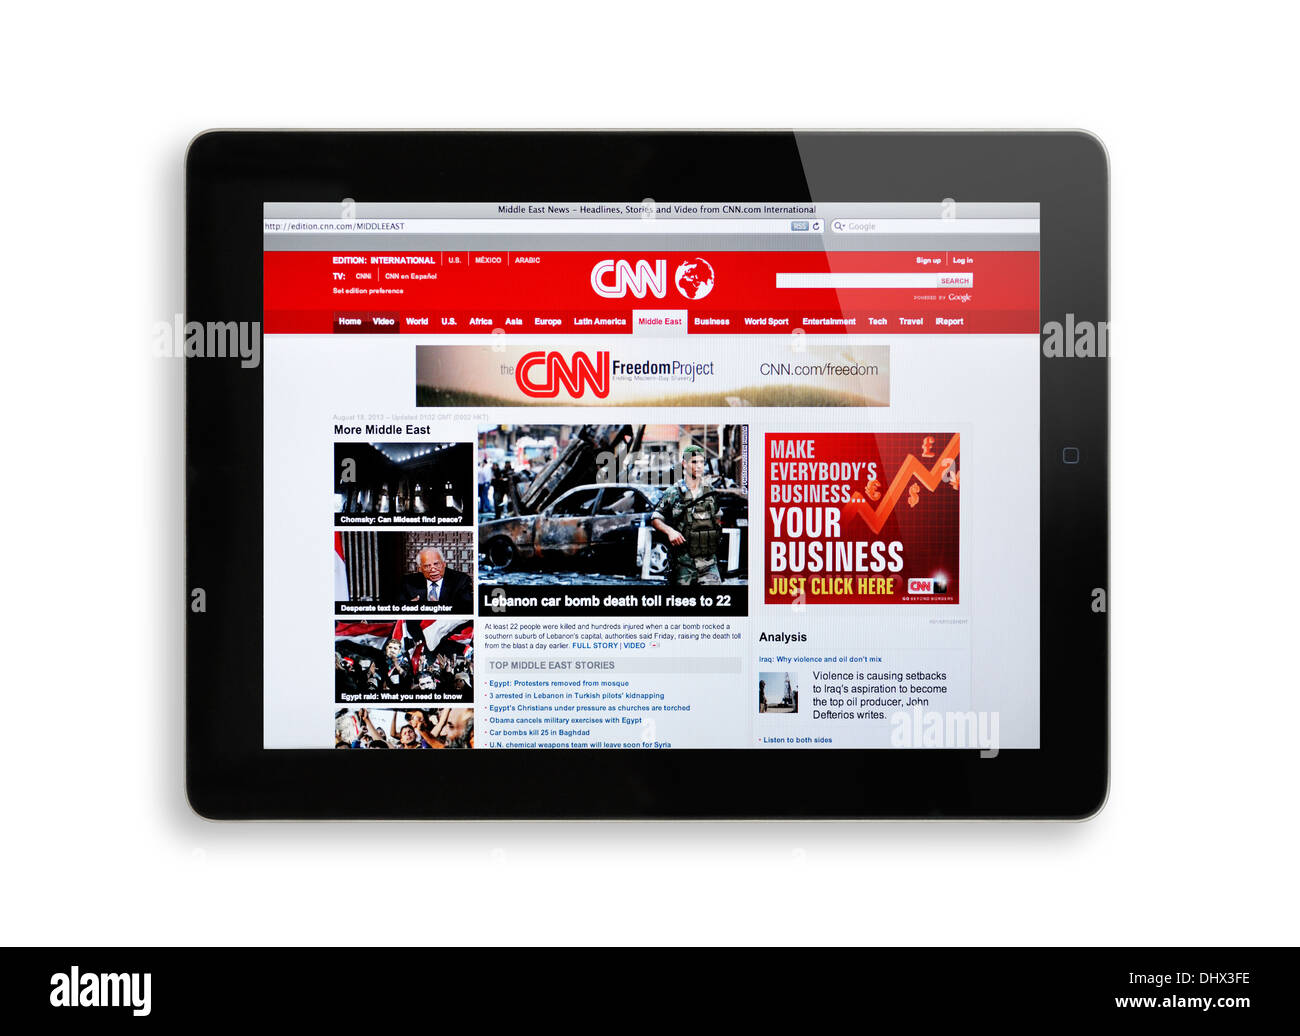 CNN website on iPad screen - Middle East - Stock Image